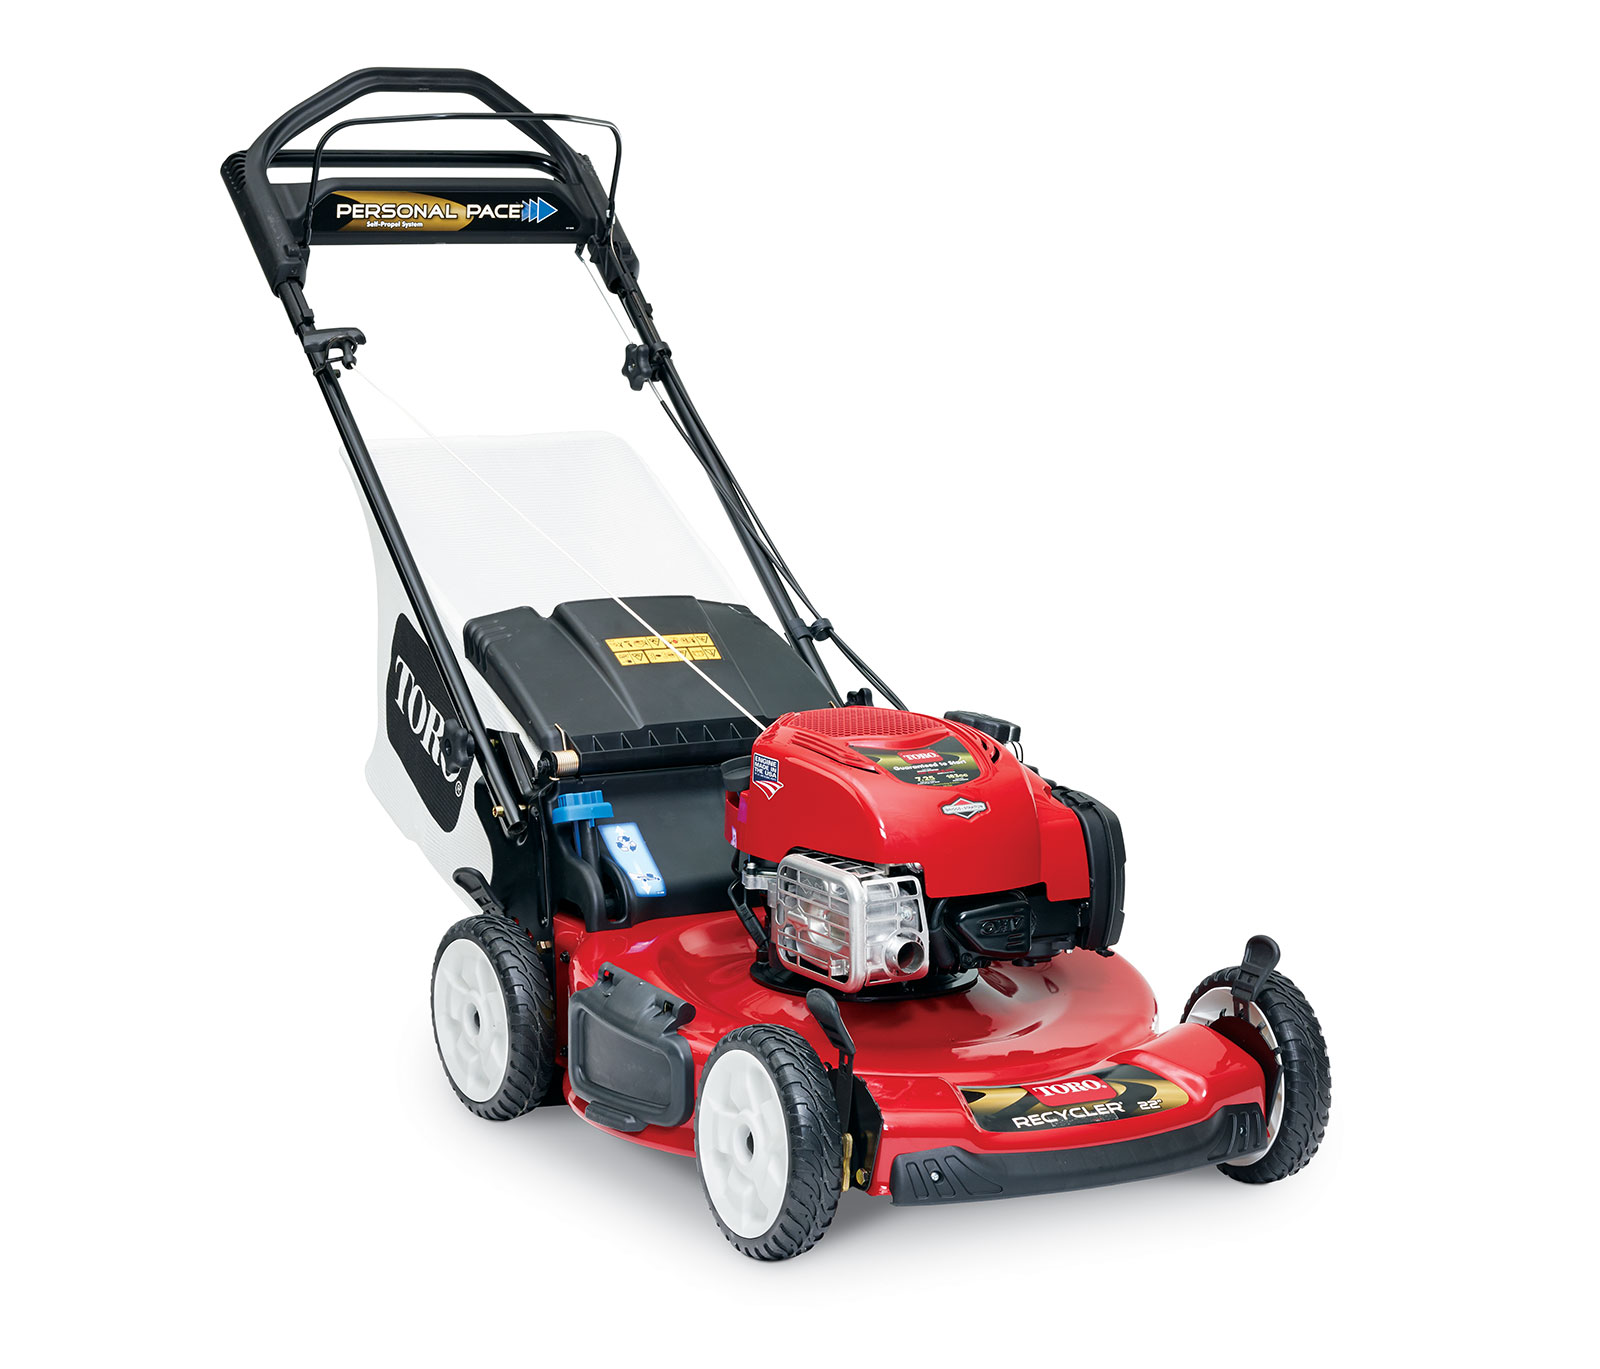 toro 22 56 cm personal pace lawn mower rh toro com toro lawn mowers manual repair toro lawn mowers manuals for model 20070